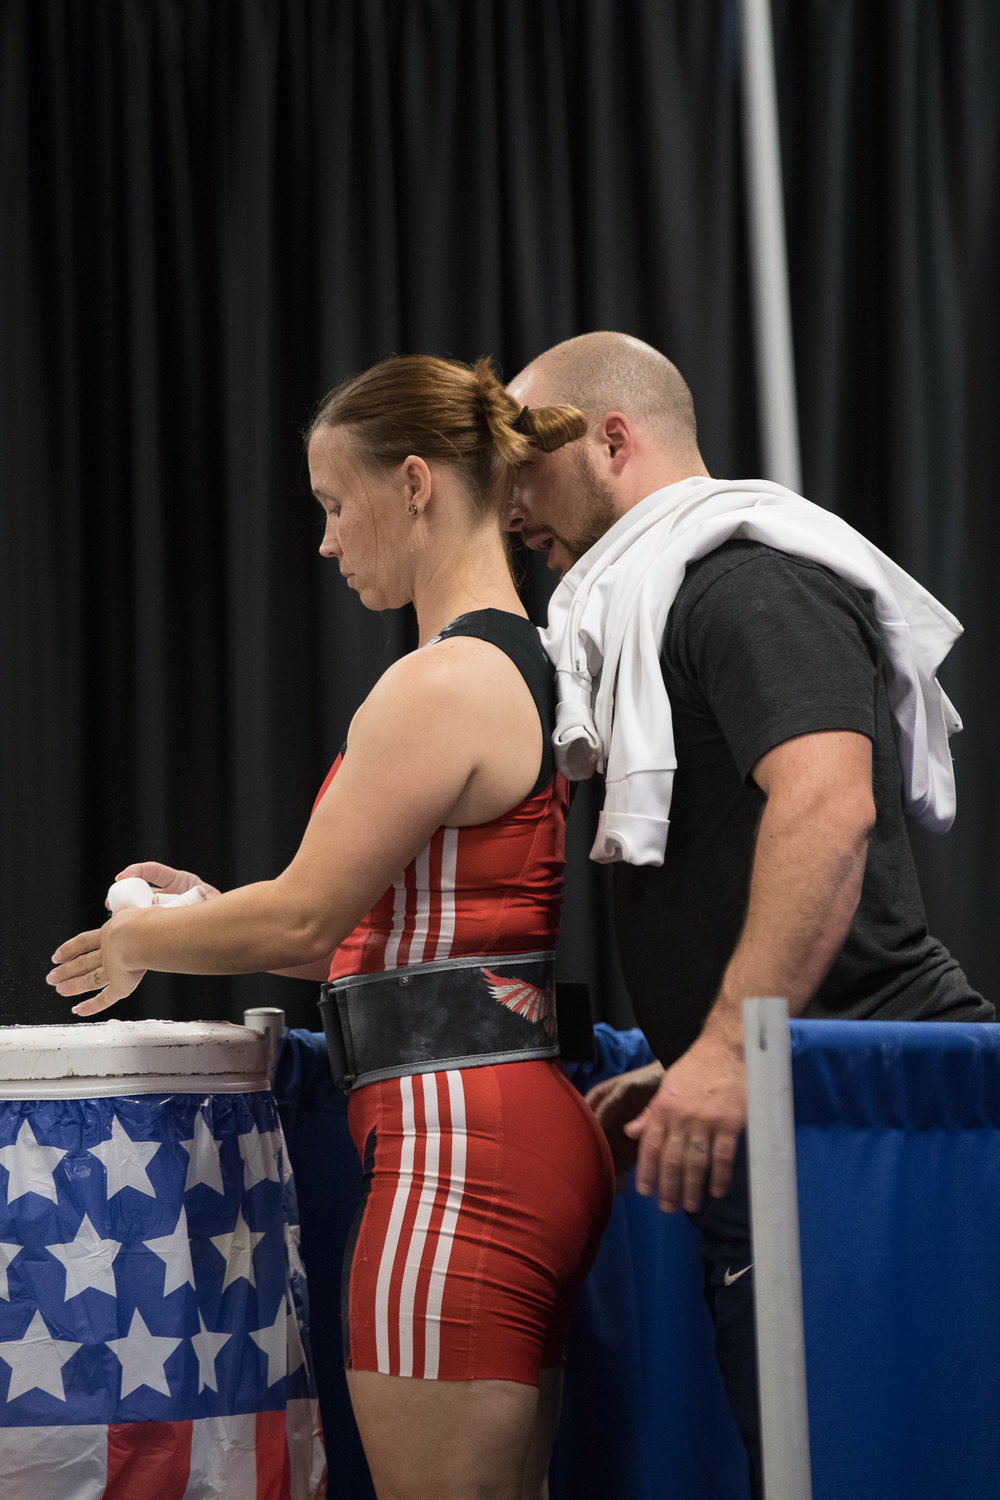 2017-american-masters-weightlifters-savannah-georgia-73.jpg